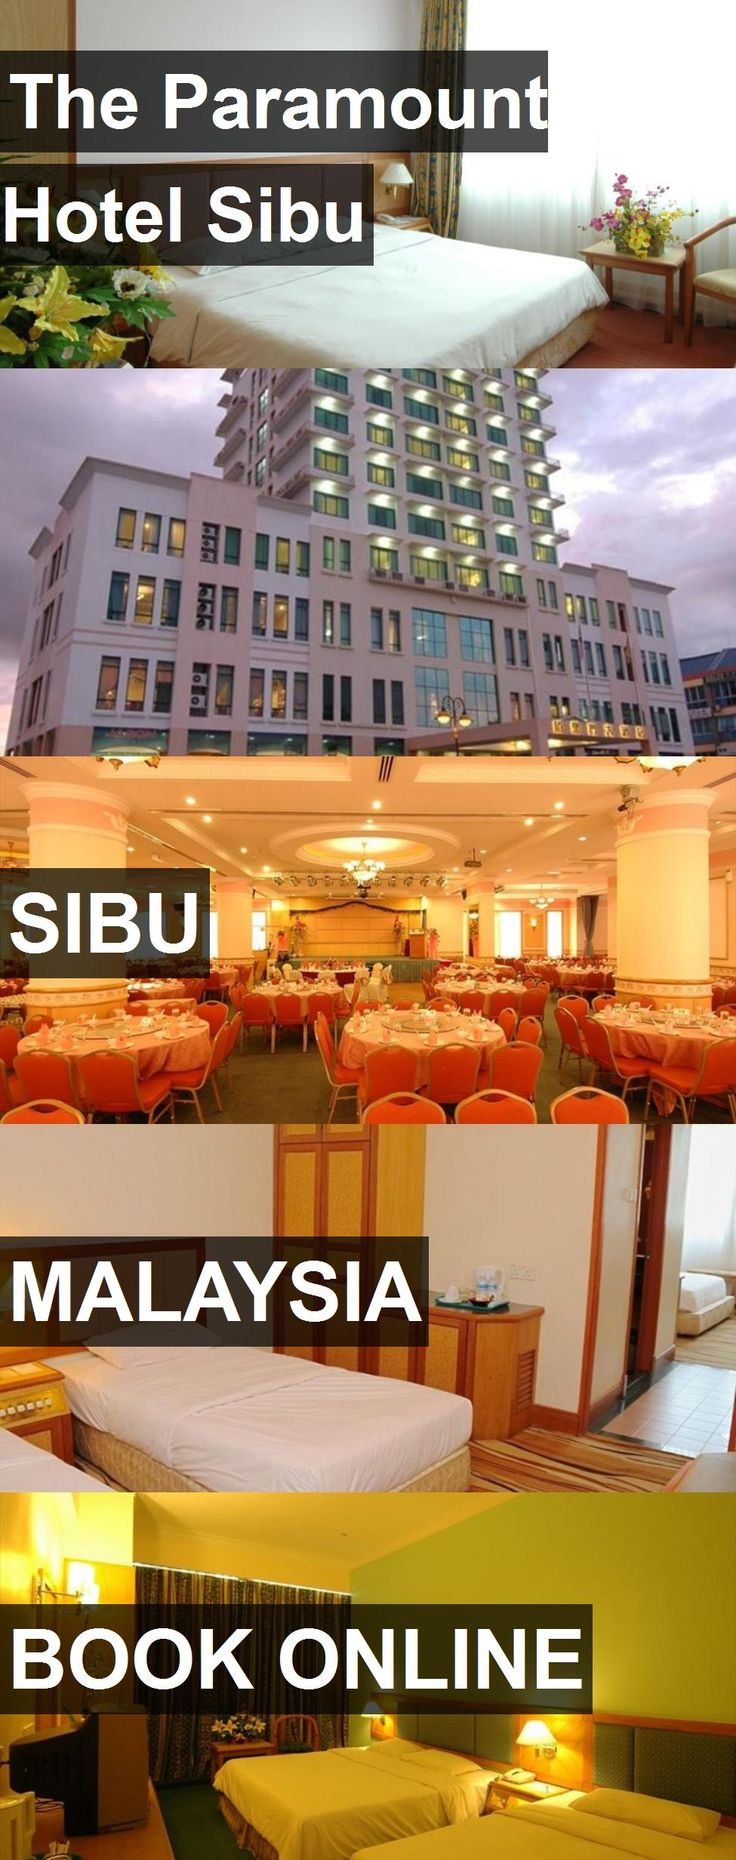 Hotel The Paramount Hotel Sibu in Sibu, Malaysia. For more information, photos, reviews and best prices please follow the link. #Malaysia #Sibu #TheParamountHotelSibu #hotel #travel #vacation